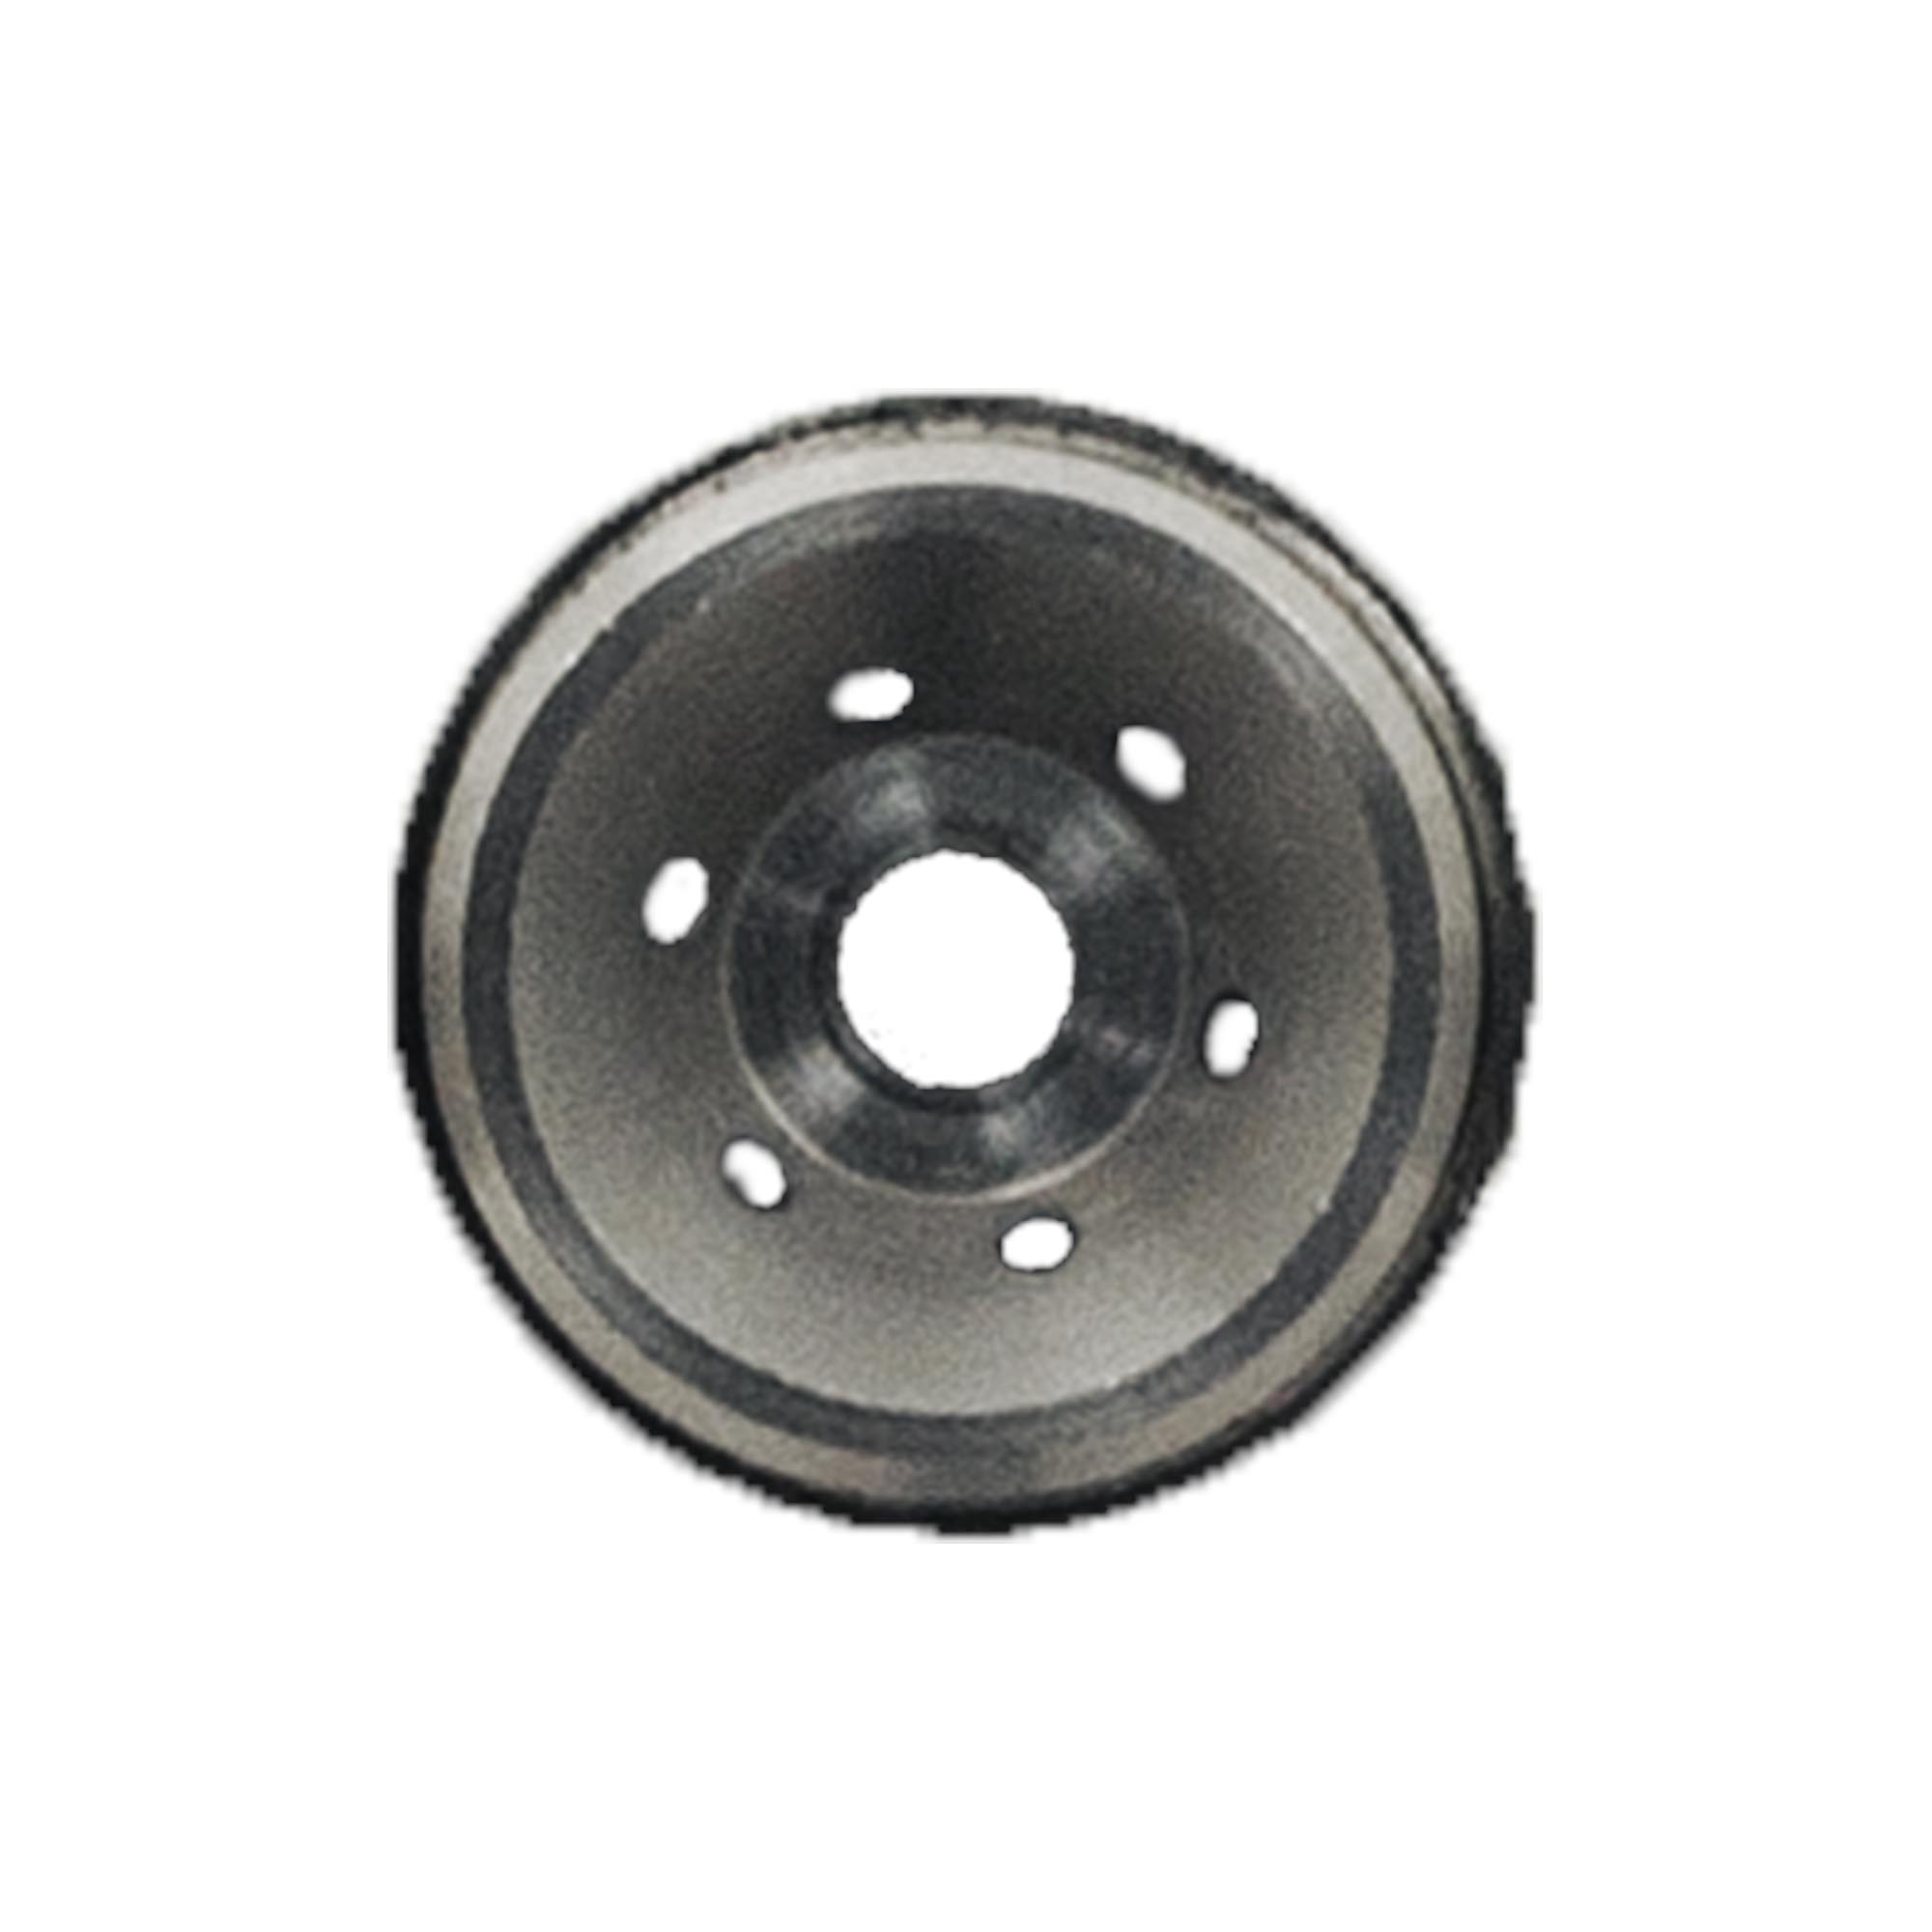 Model 901203-R20 Air Cap for ER1030SS